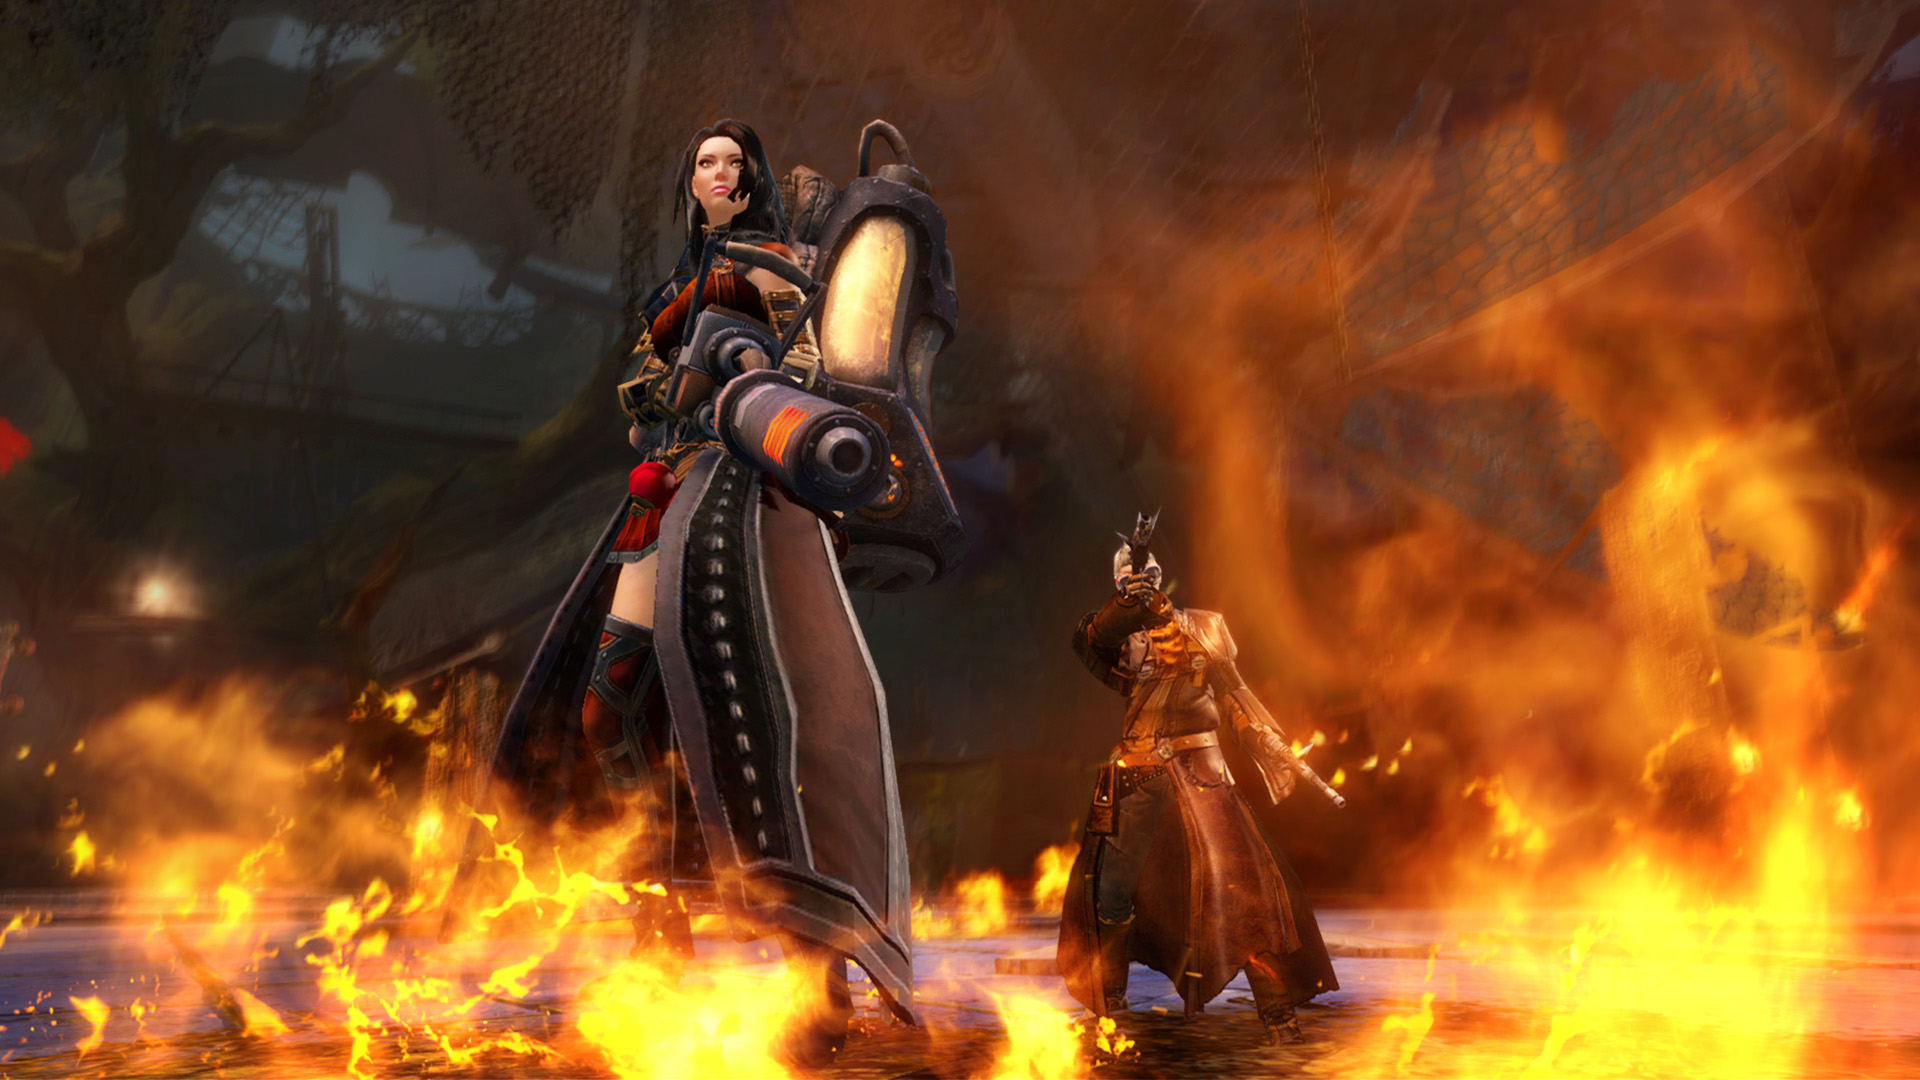 Guild Wars 2 is now available for free, and its paid expansion will